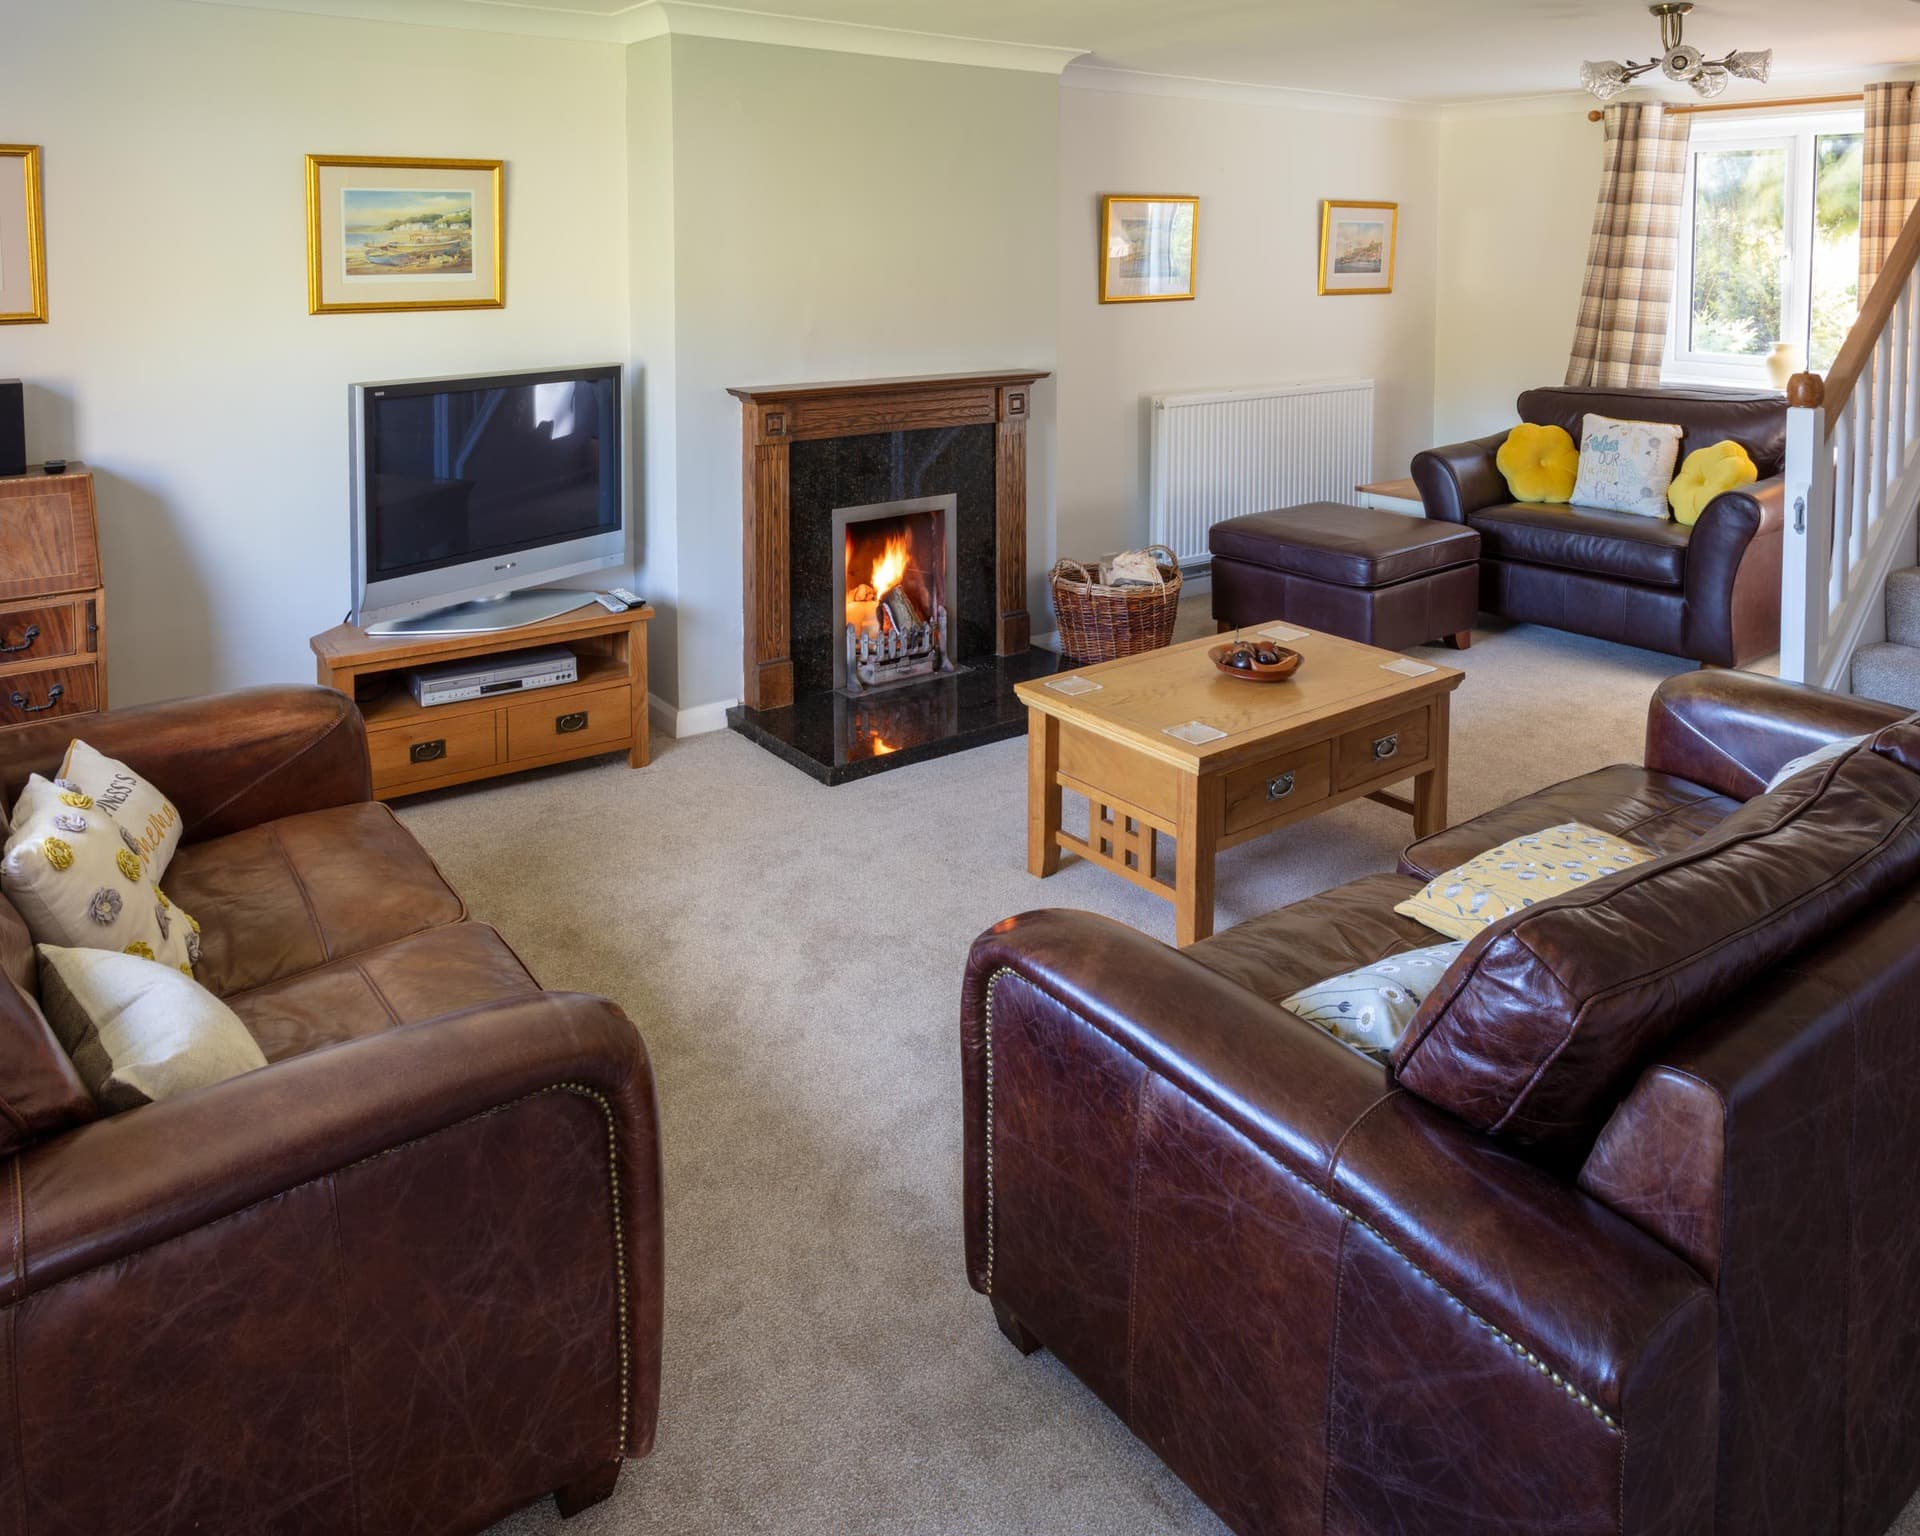 self catering holiday cottage with open fire, north yorkshire, holidays, ebberston, cliff house holiday cottages, cliff house country cottages, cliff house, cliff house farm, holiday